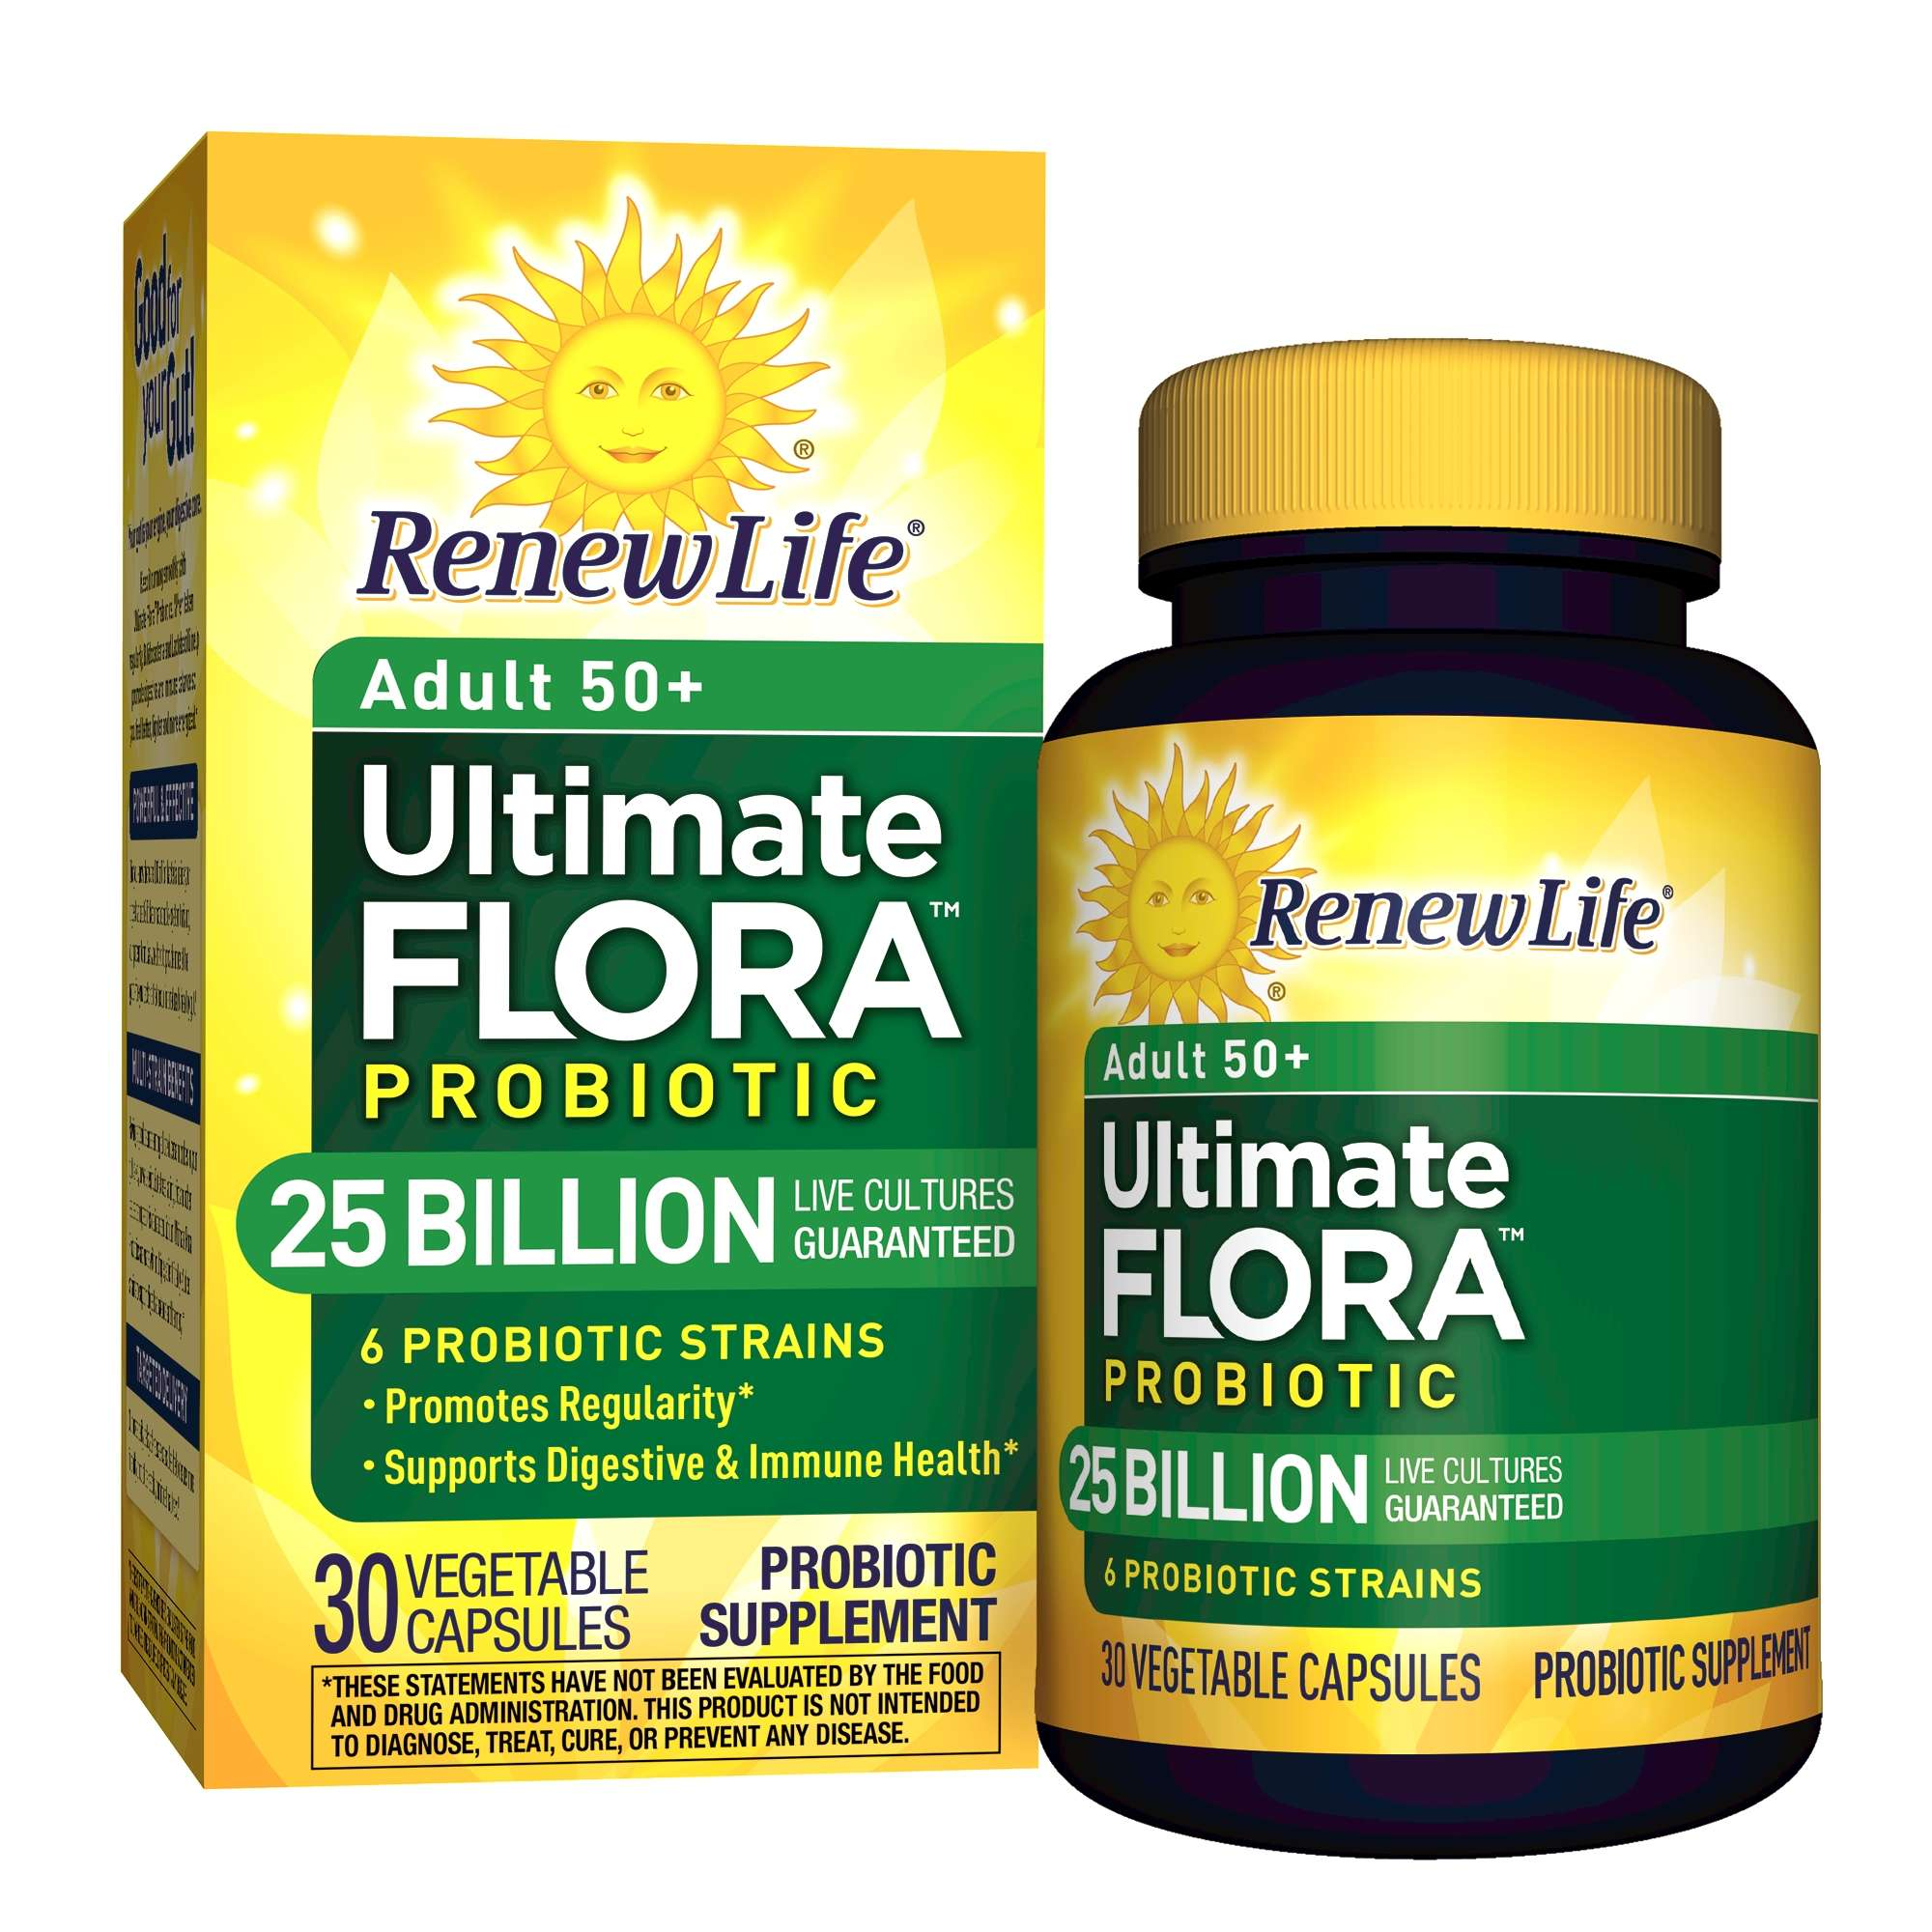 Renew Life Adult 50+ Probiotic, Ultimate Flora, 25 Billion, 30 Capsules - Walmart.com